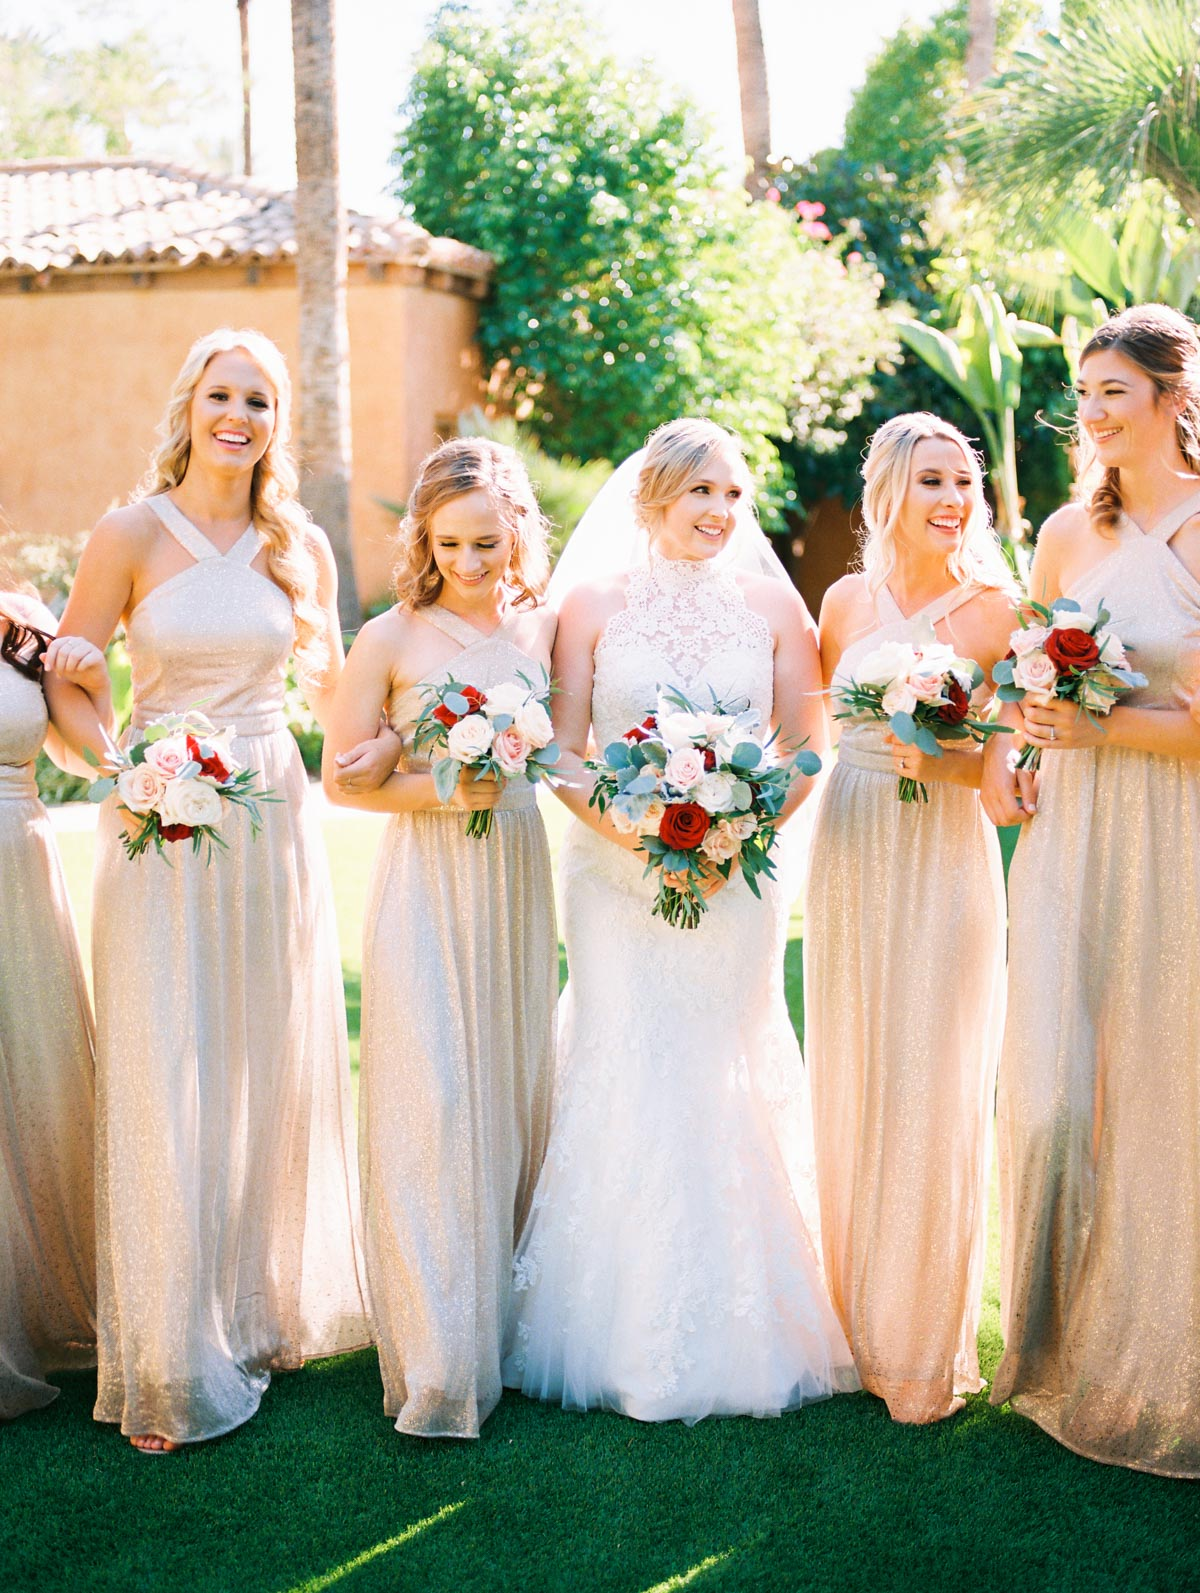 smiling-bride-bridesmaids.jpg